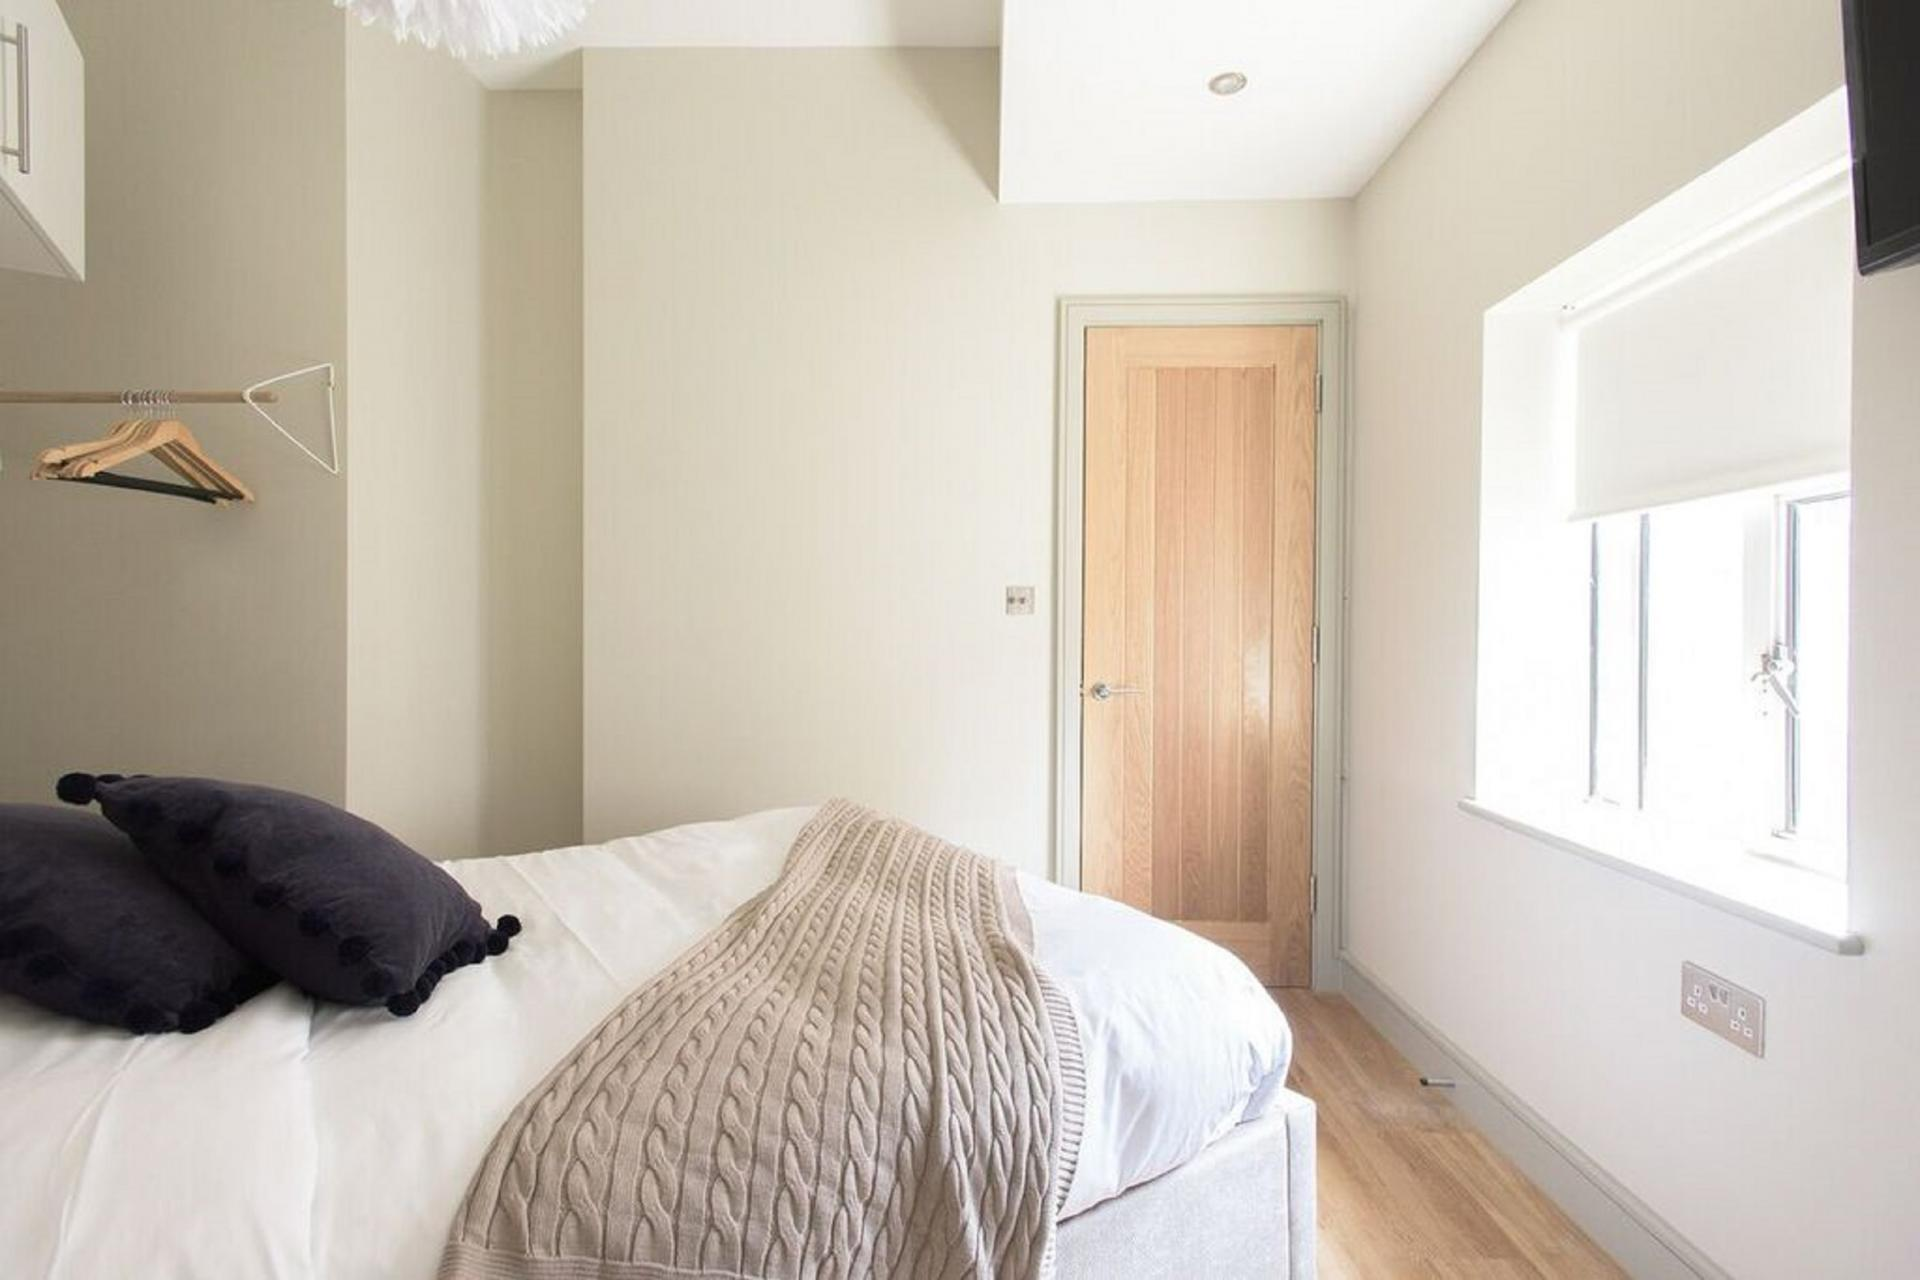 Bedroom layout at The Soho Loft, Mayfair, London - Citybase Apartments